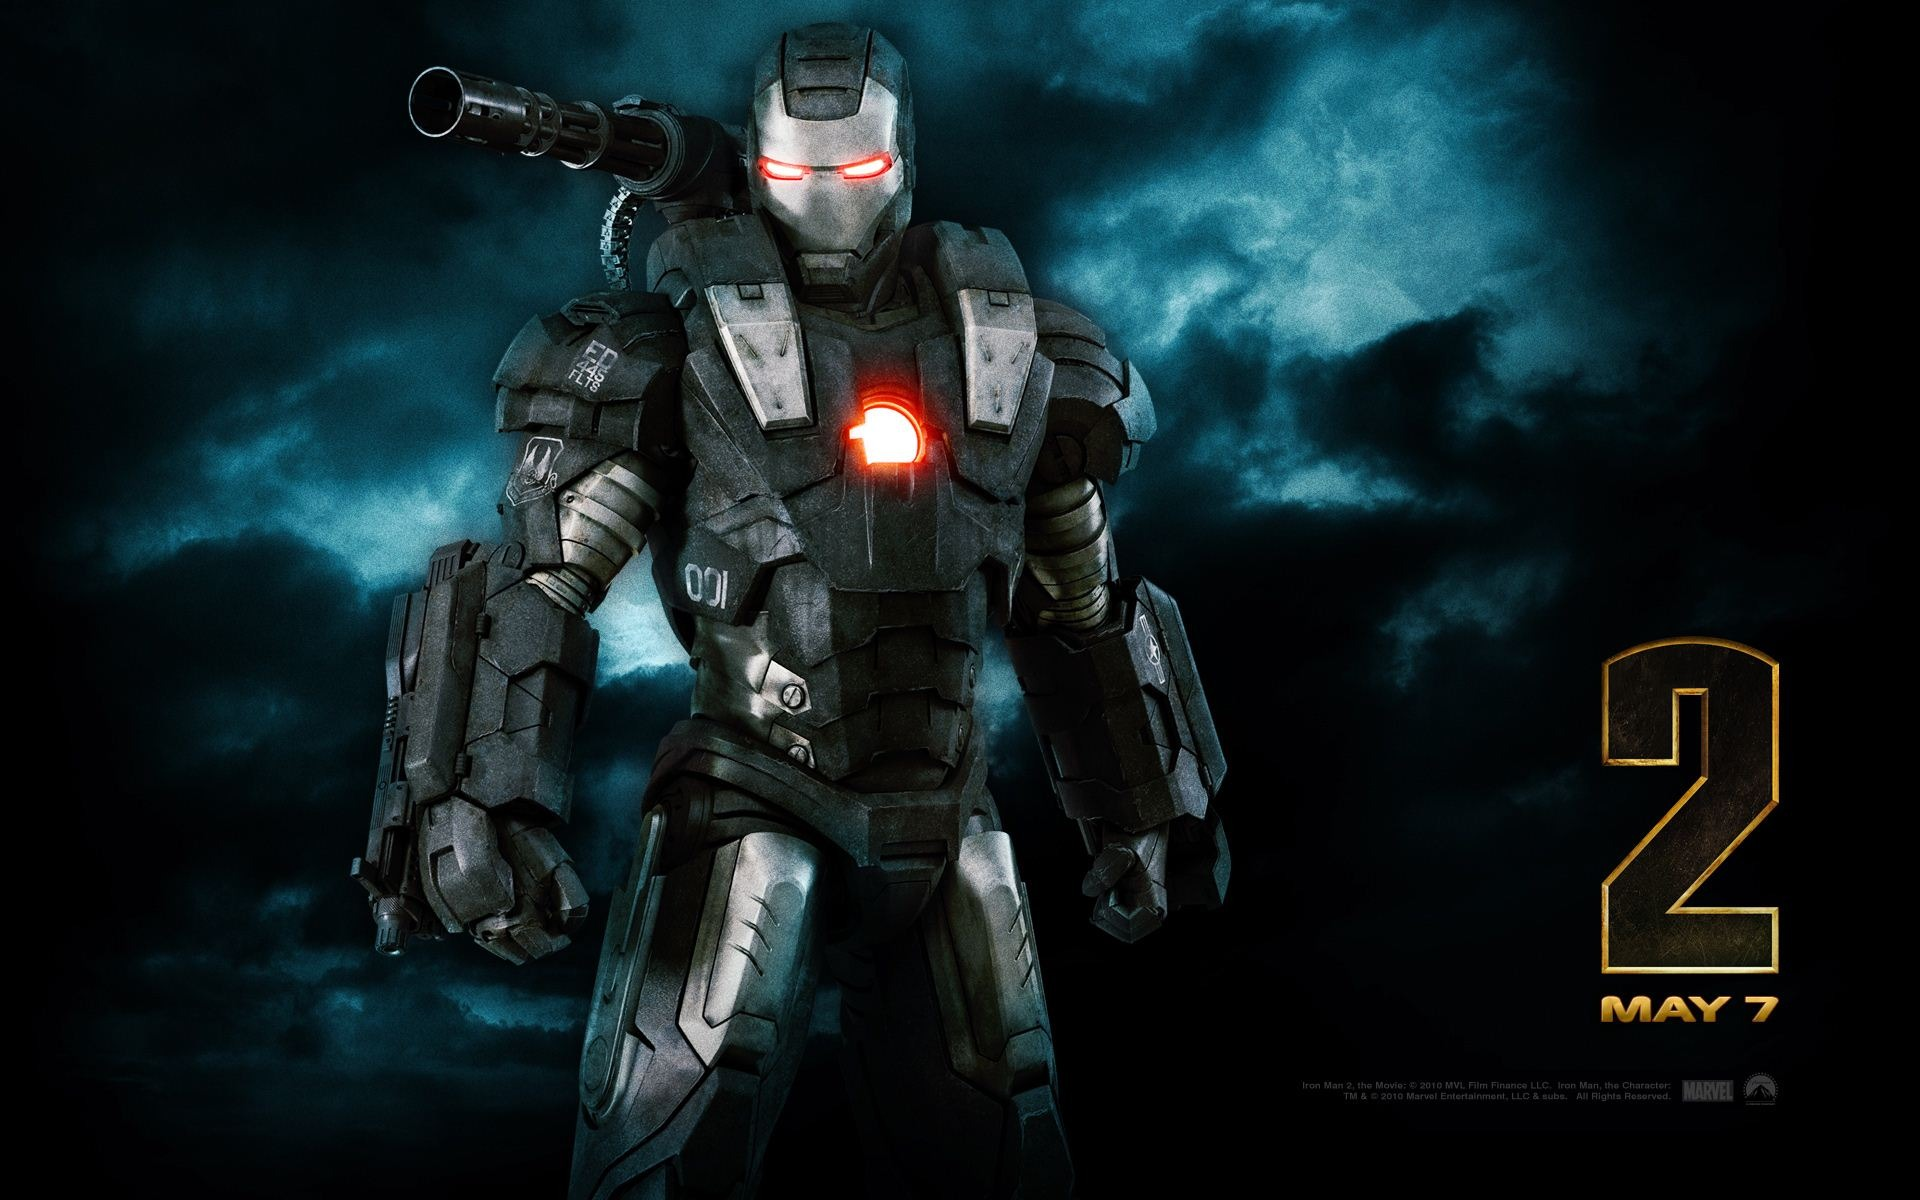 Iron Man 2 HD Wallpaper #34 - 1920x1200